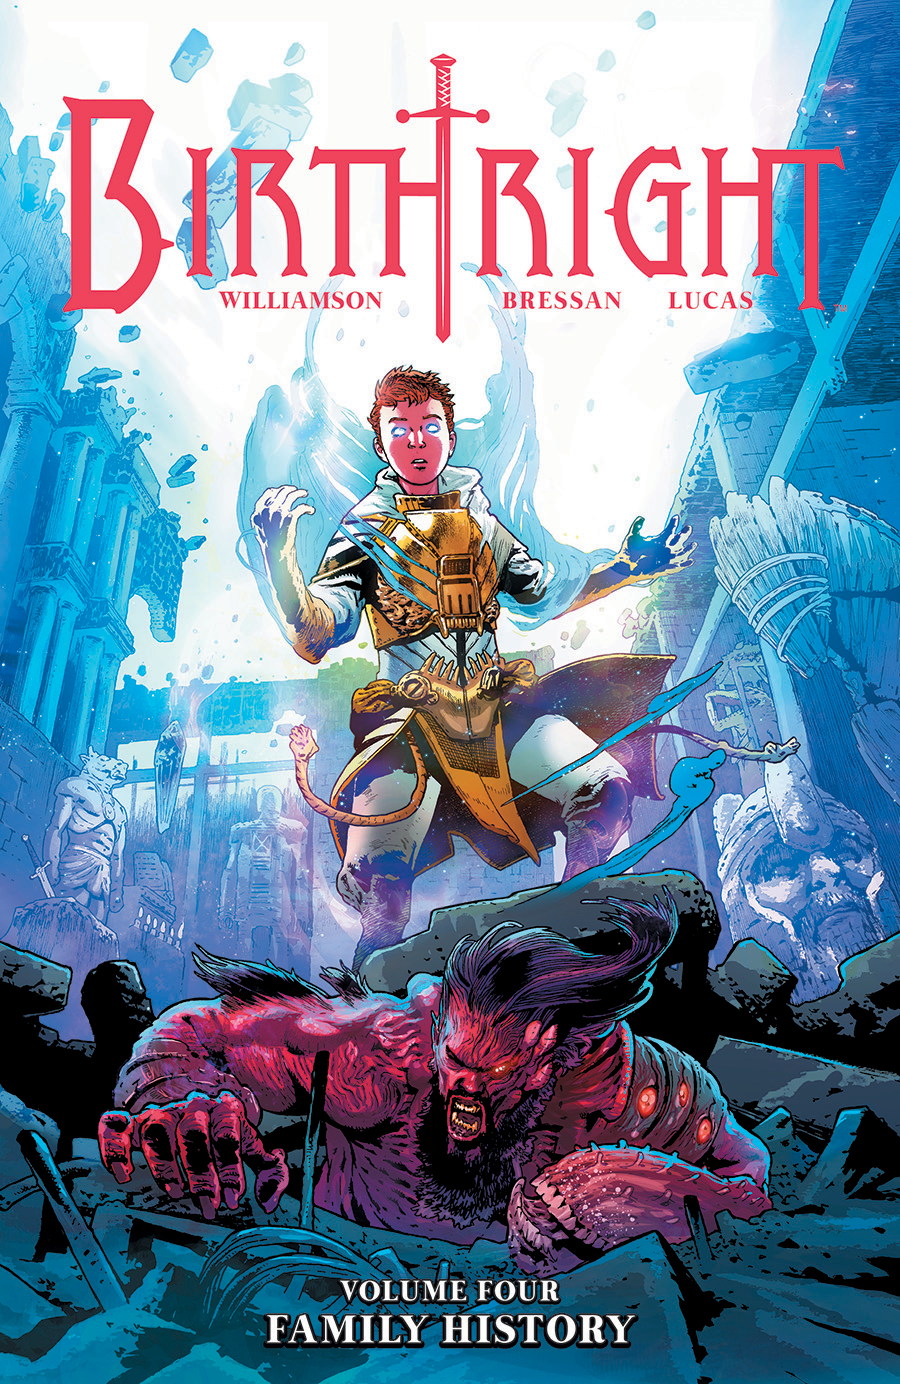 birthrightv4_cover2